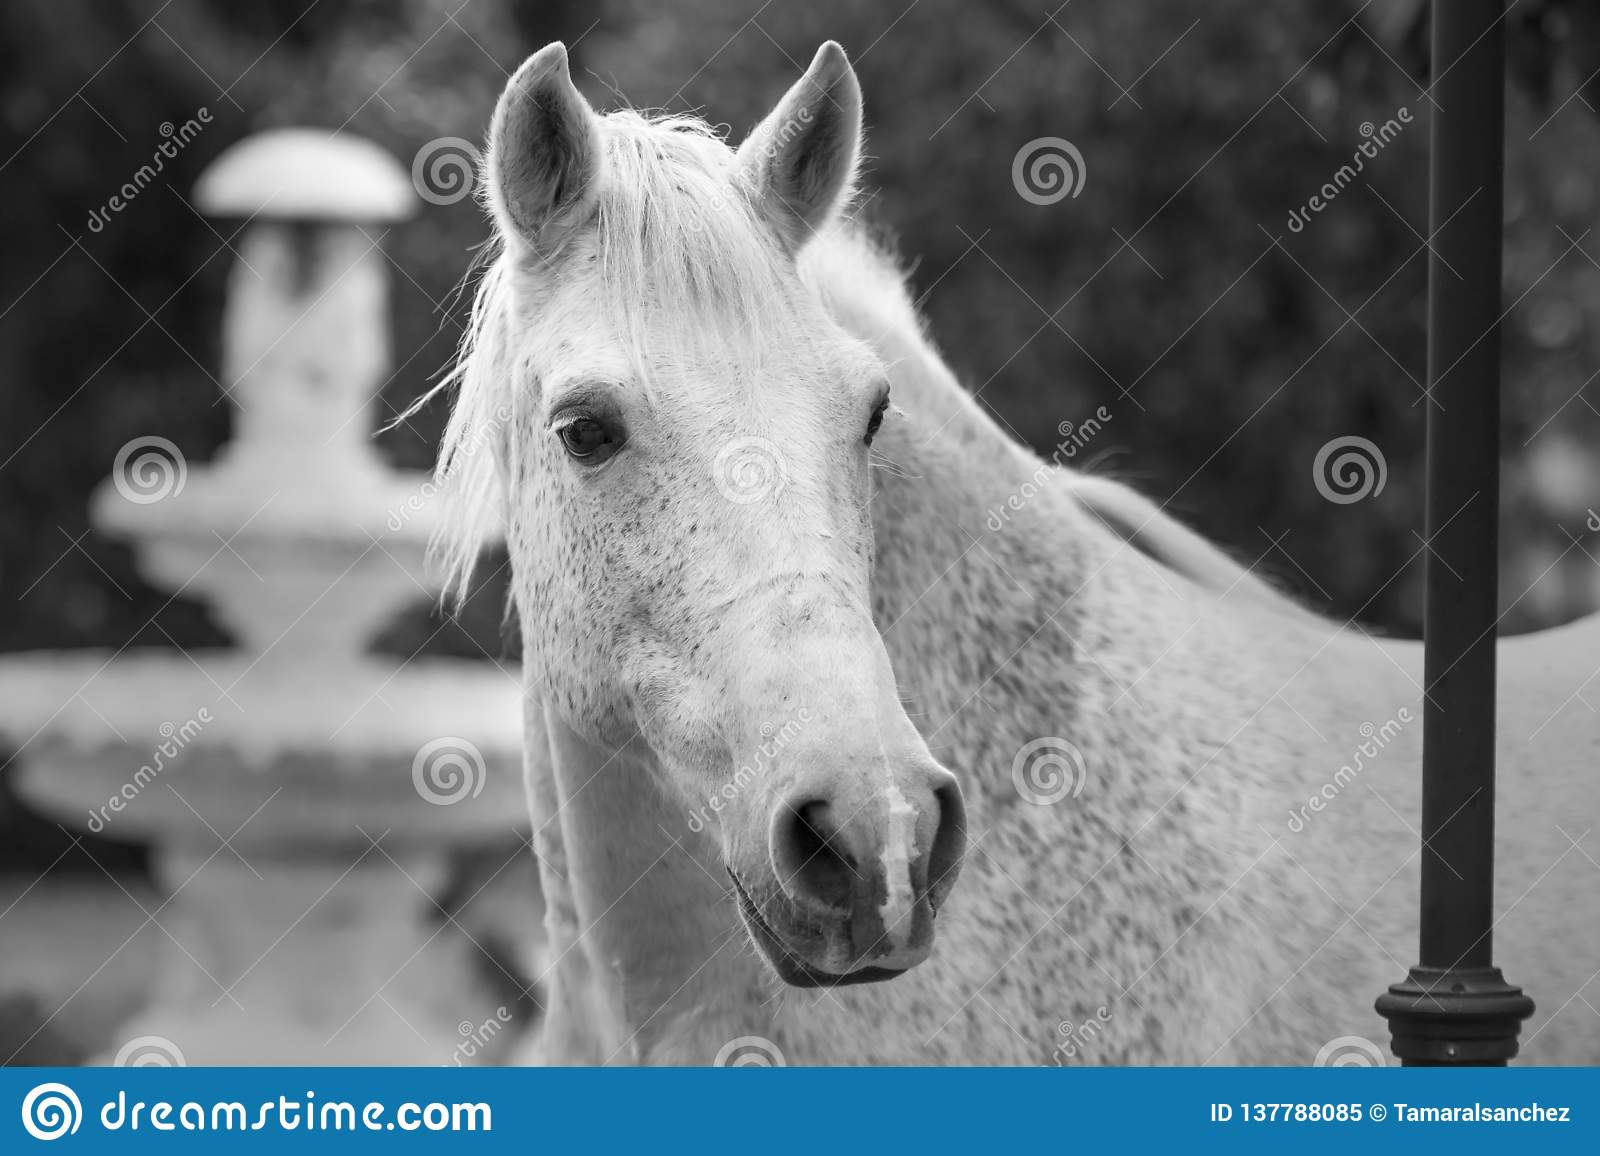 Portrait In Black And White Of A White Horse In A Garden With A Fountain As A Background Stock Image Image Of Autumn Cute 137788085